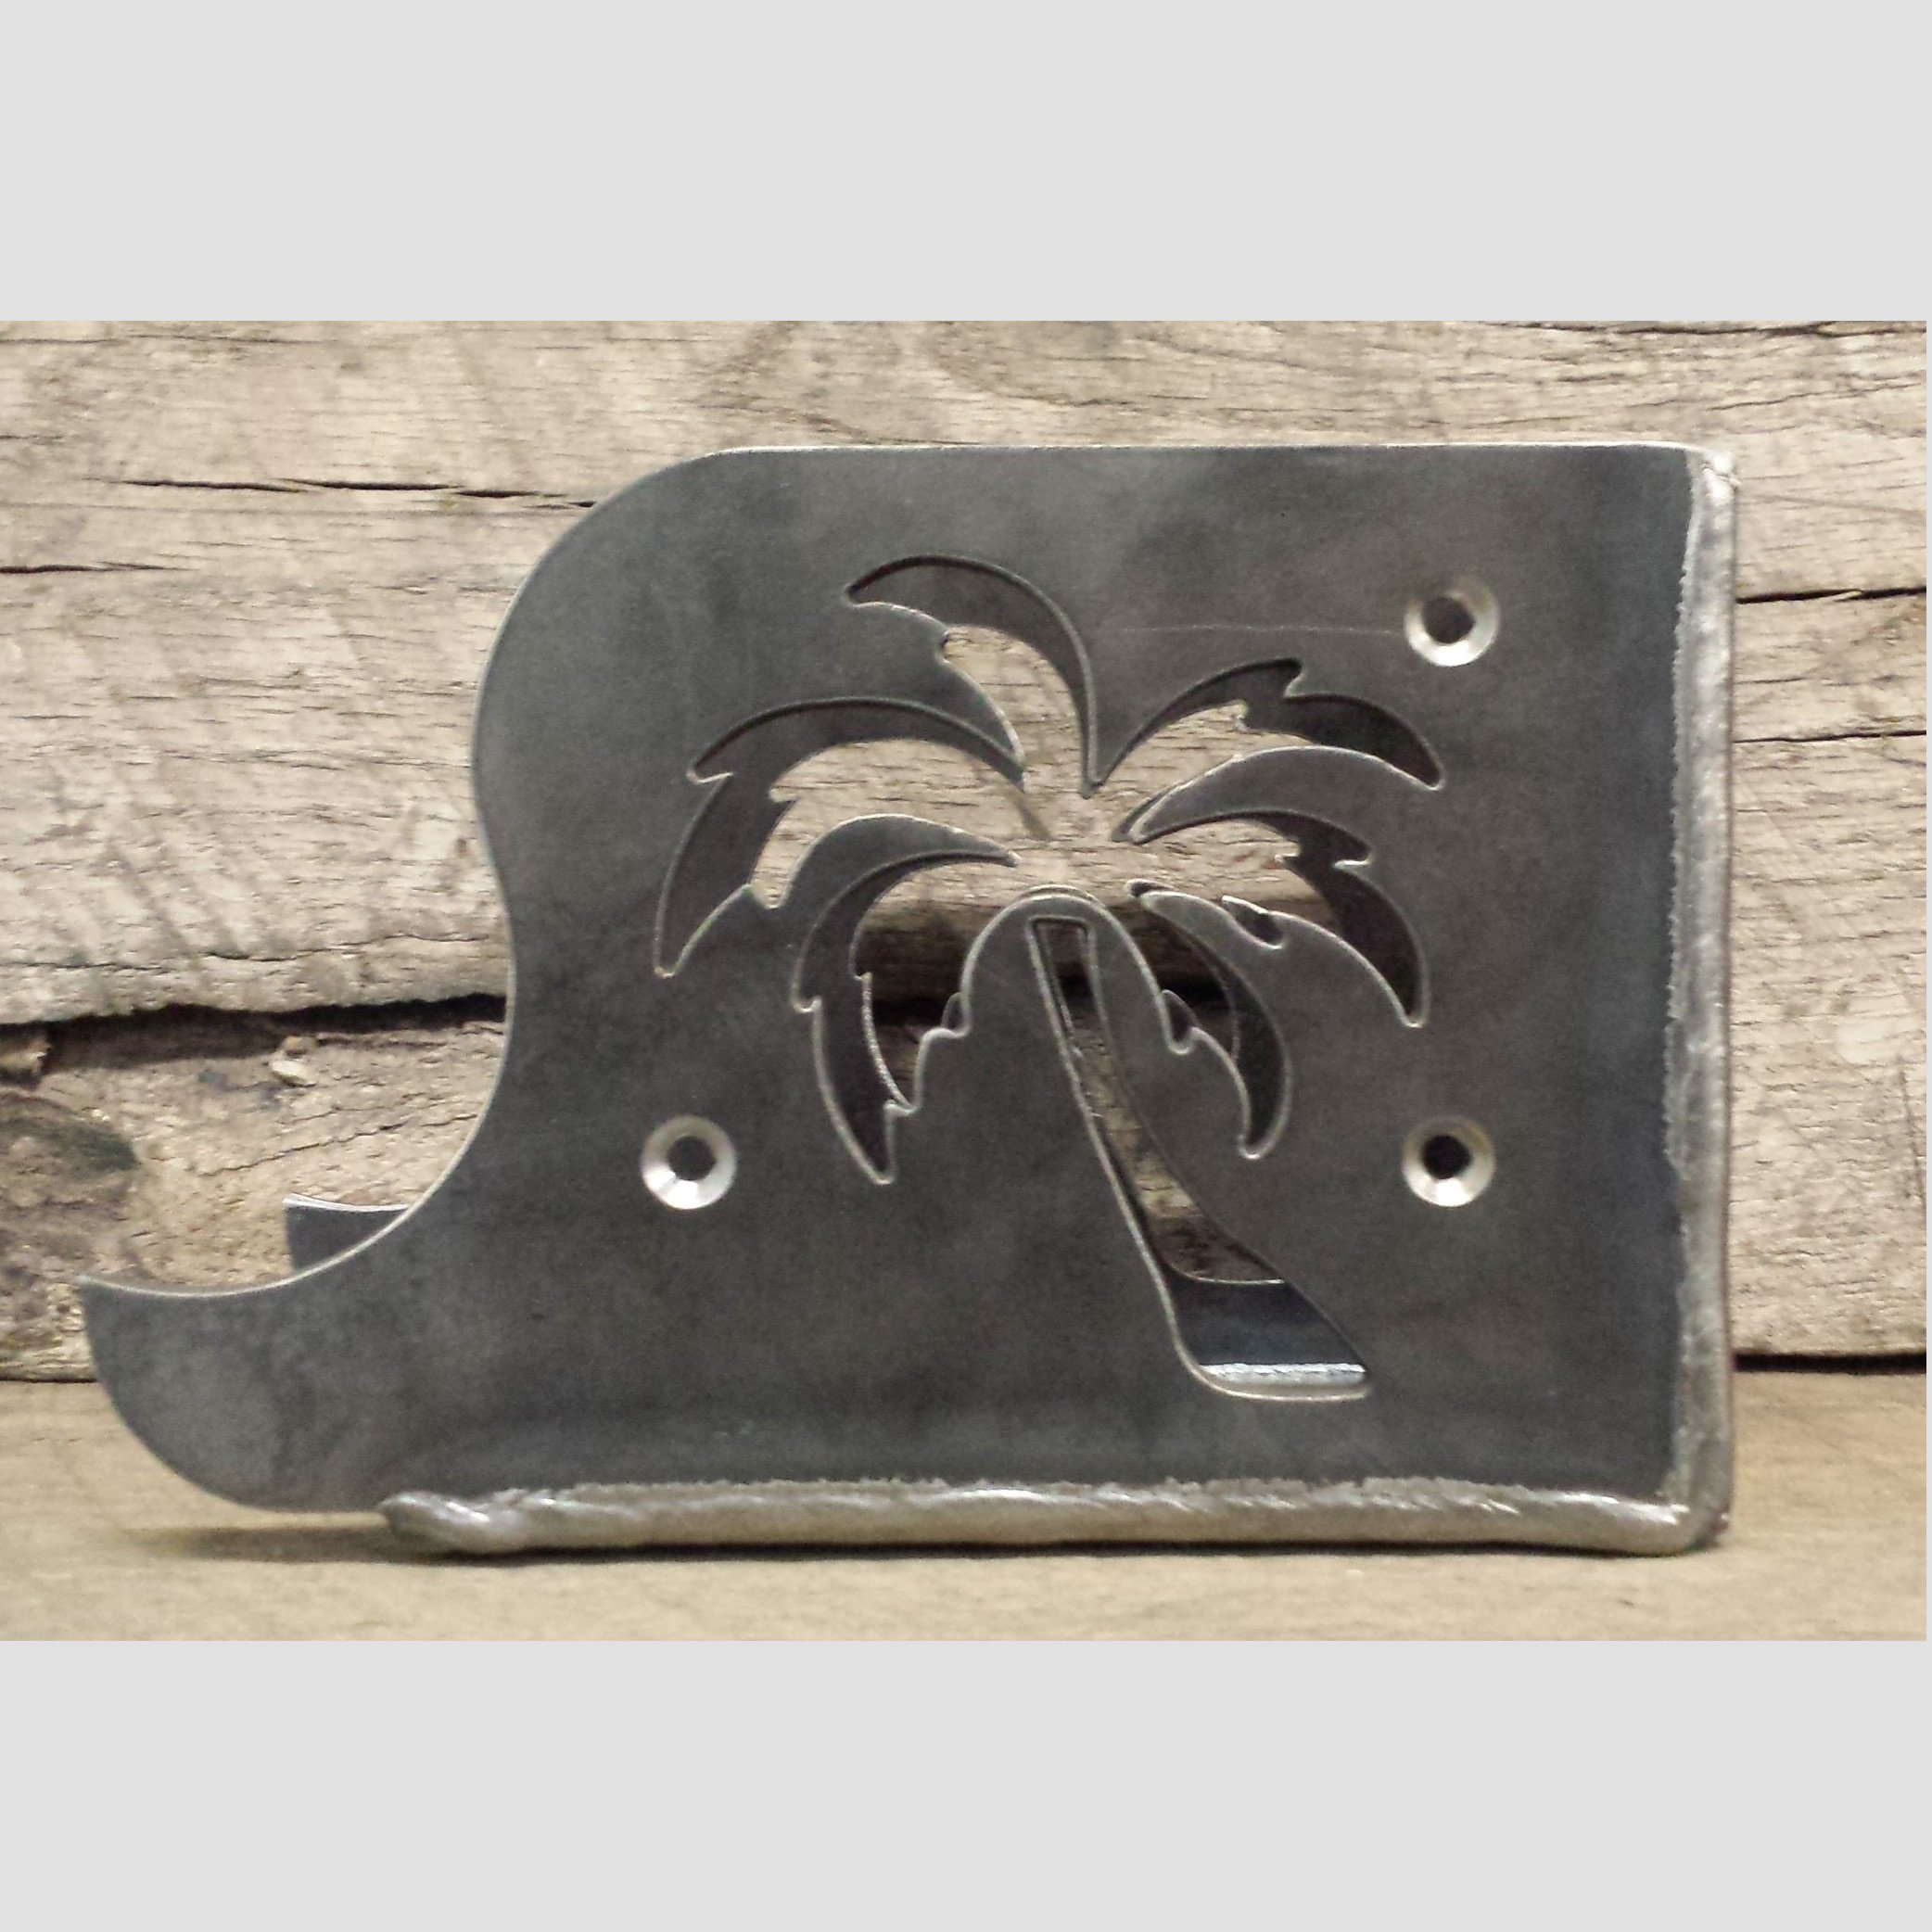 Decorative Joist Hangers - Ocean - Palm Tree Theme